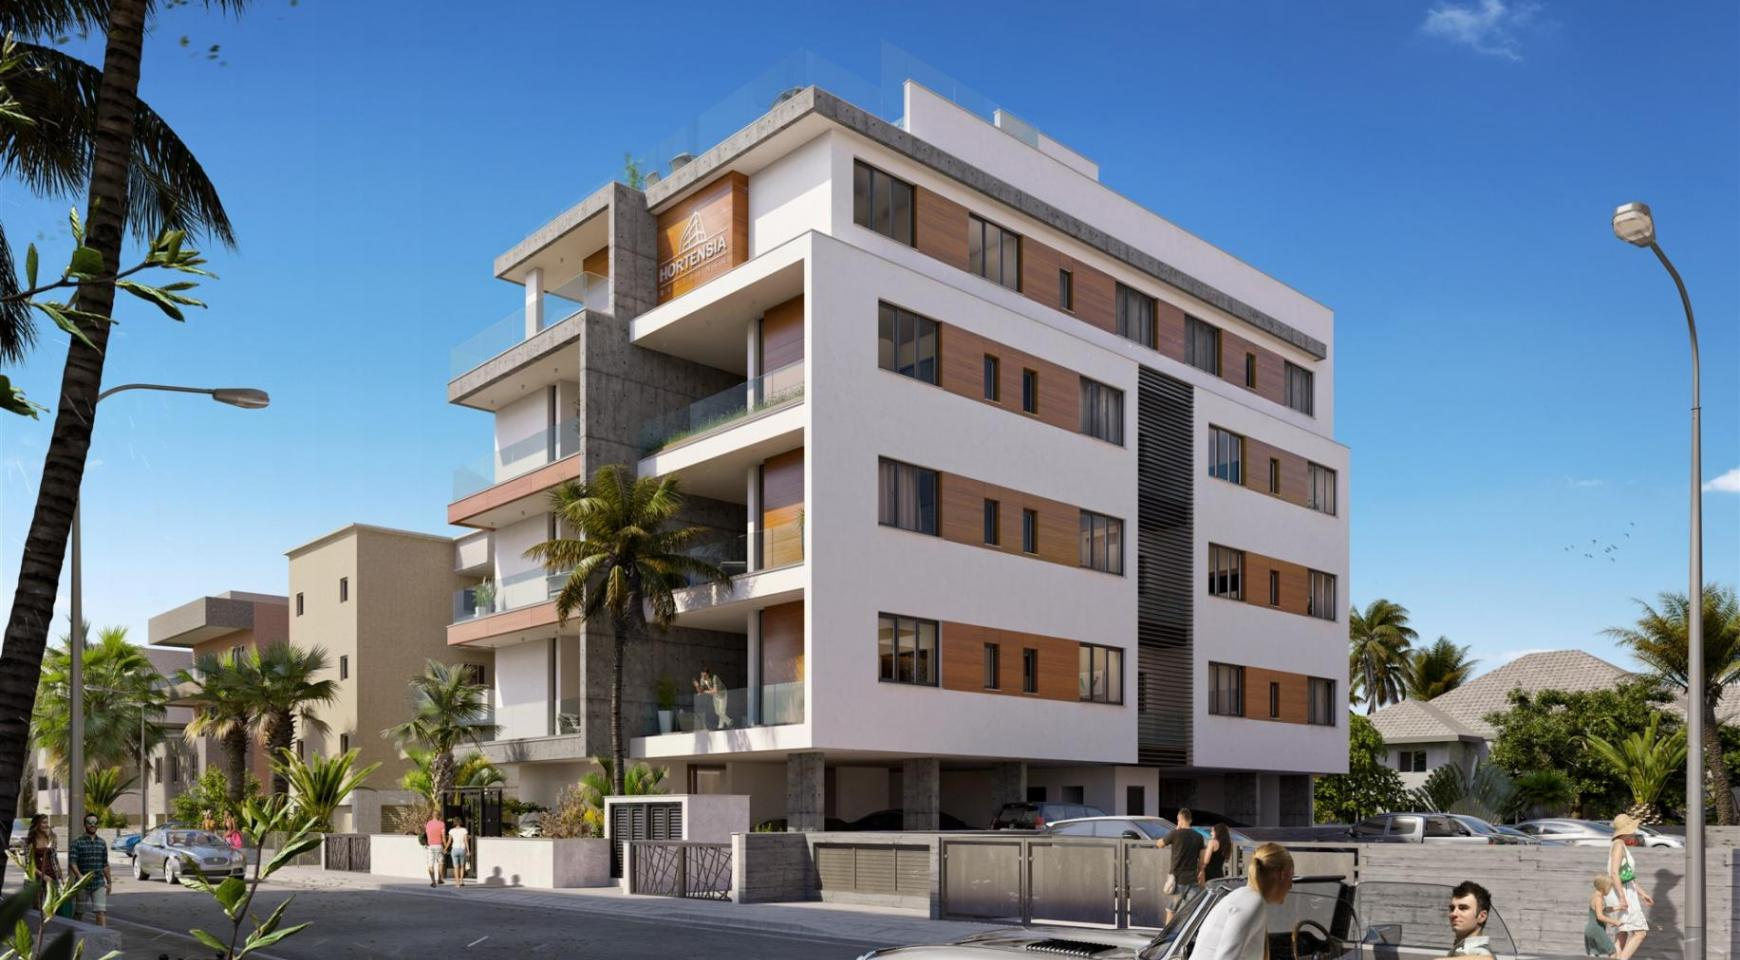 Hortensia Residence, Apt. 203. 3 Bedroom Apartment within a New Complex near the Sea - 2